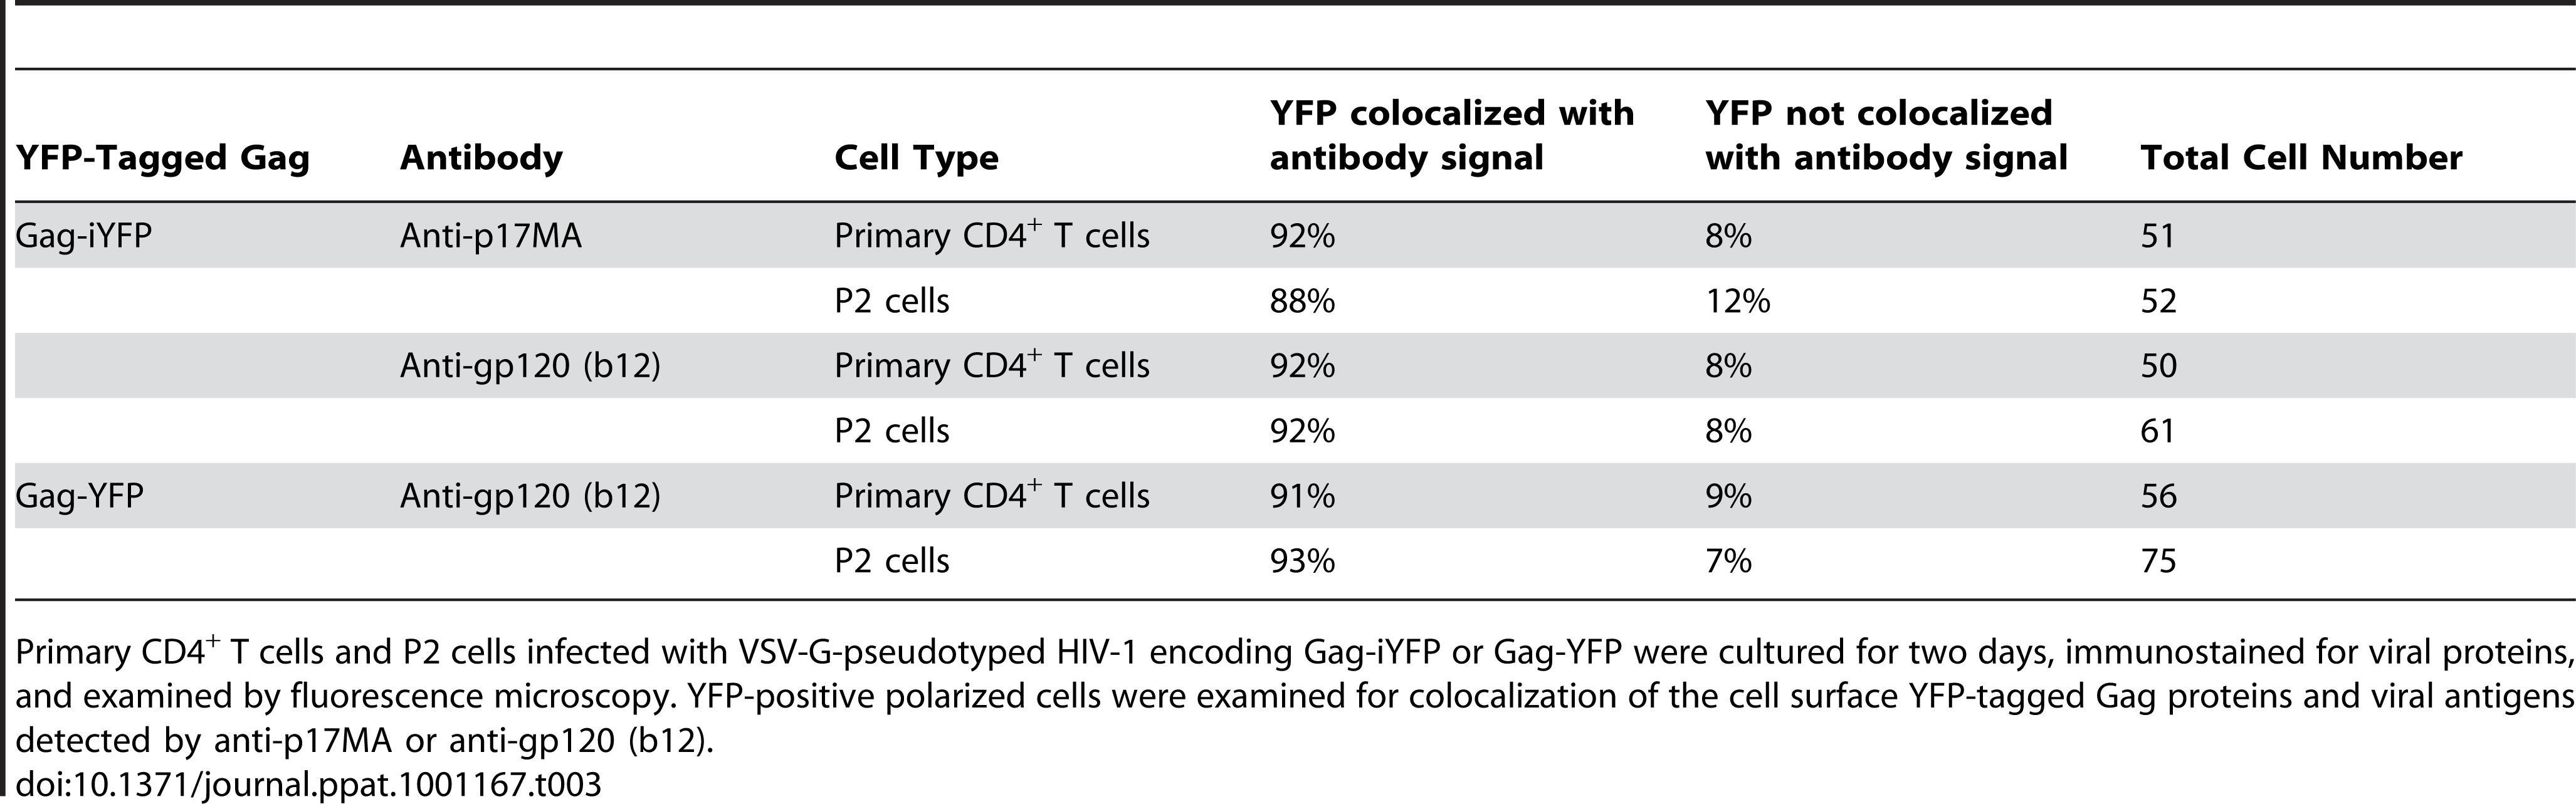 Colocalization of YFP-Tagged Gag with Antibody-Detected Viral Proteins.